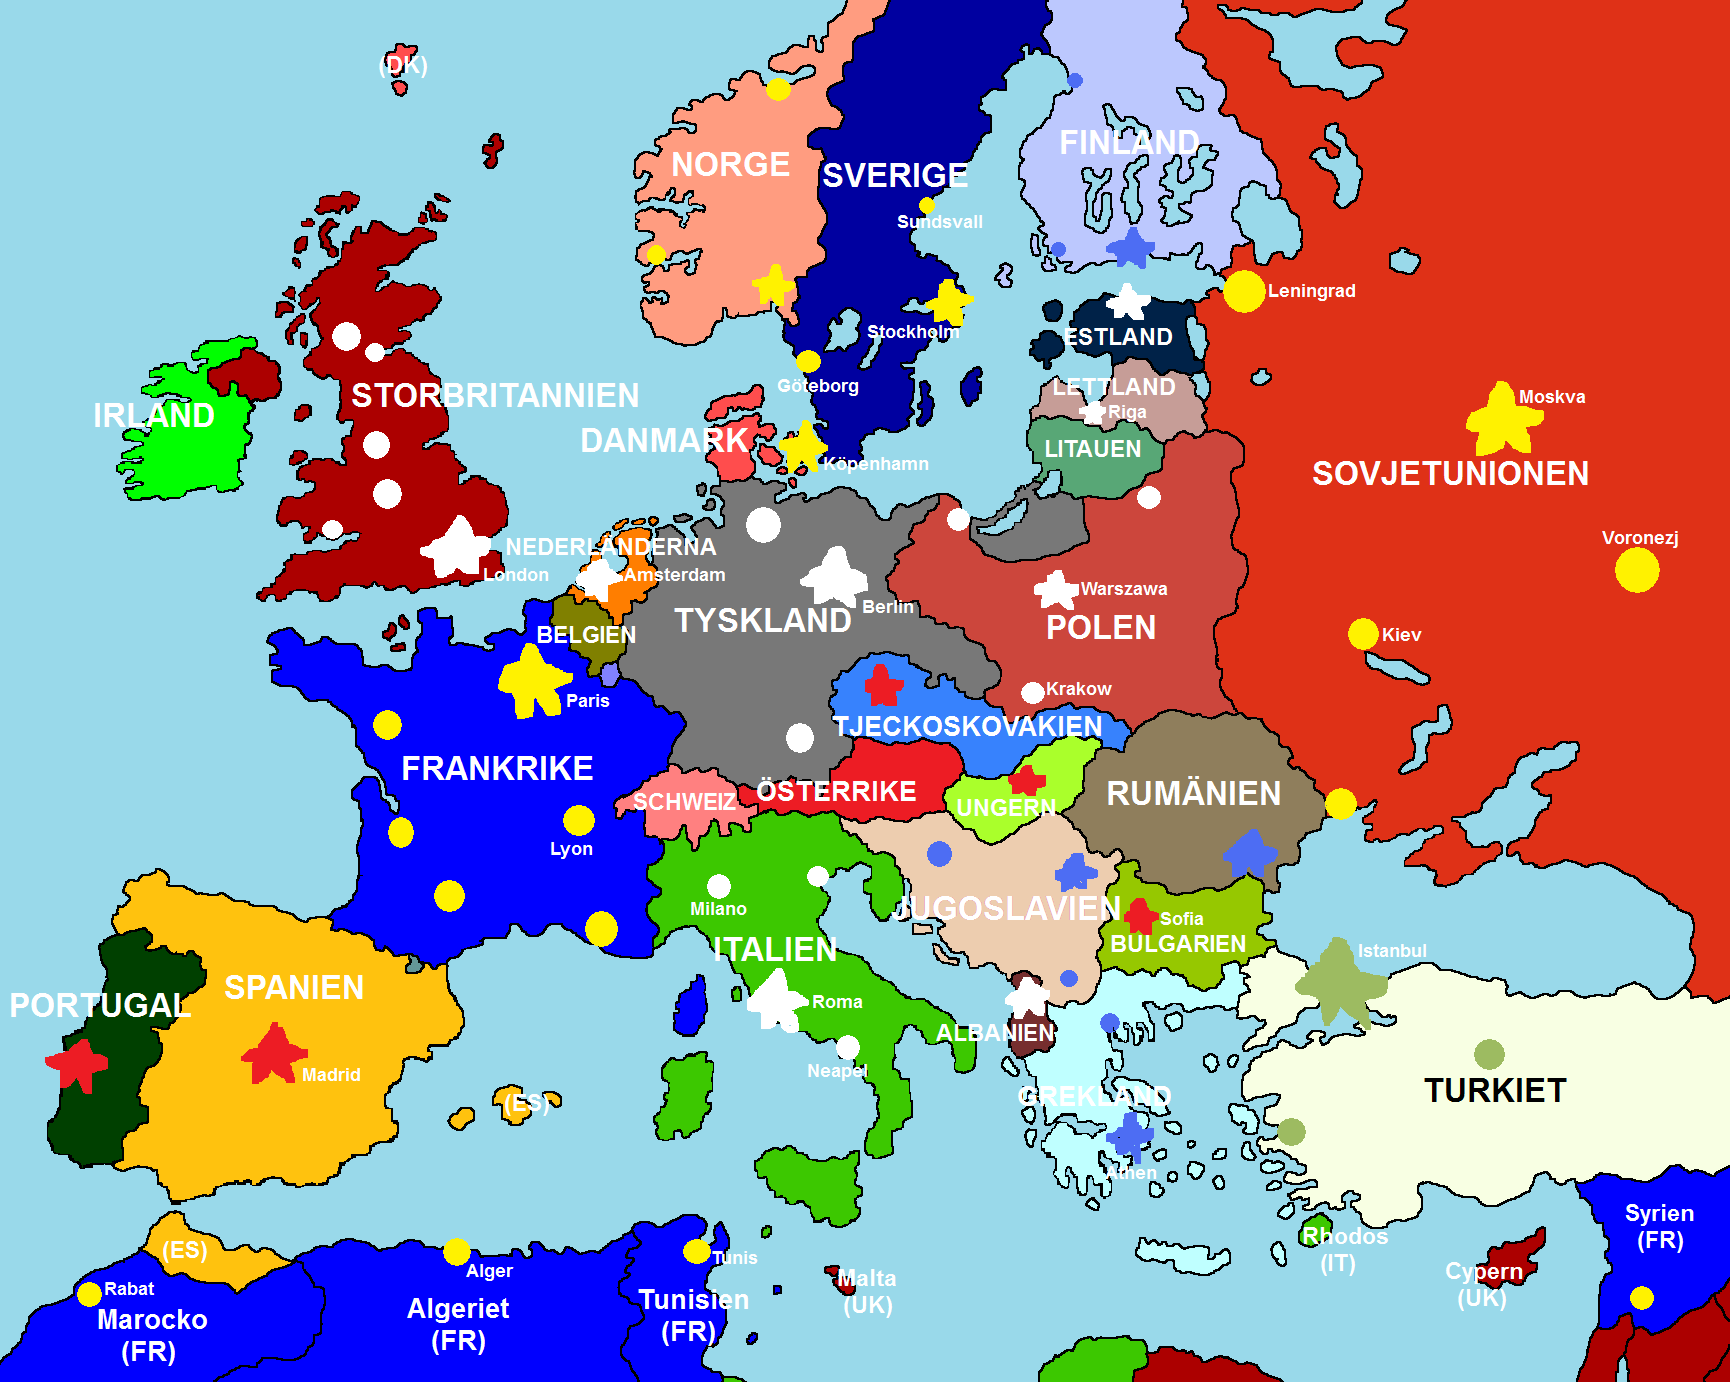 map of europe 1920 fullmap unfinishedpng